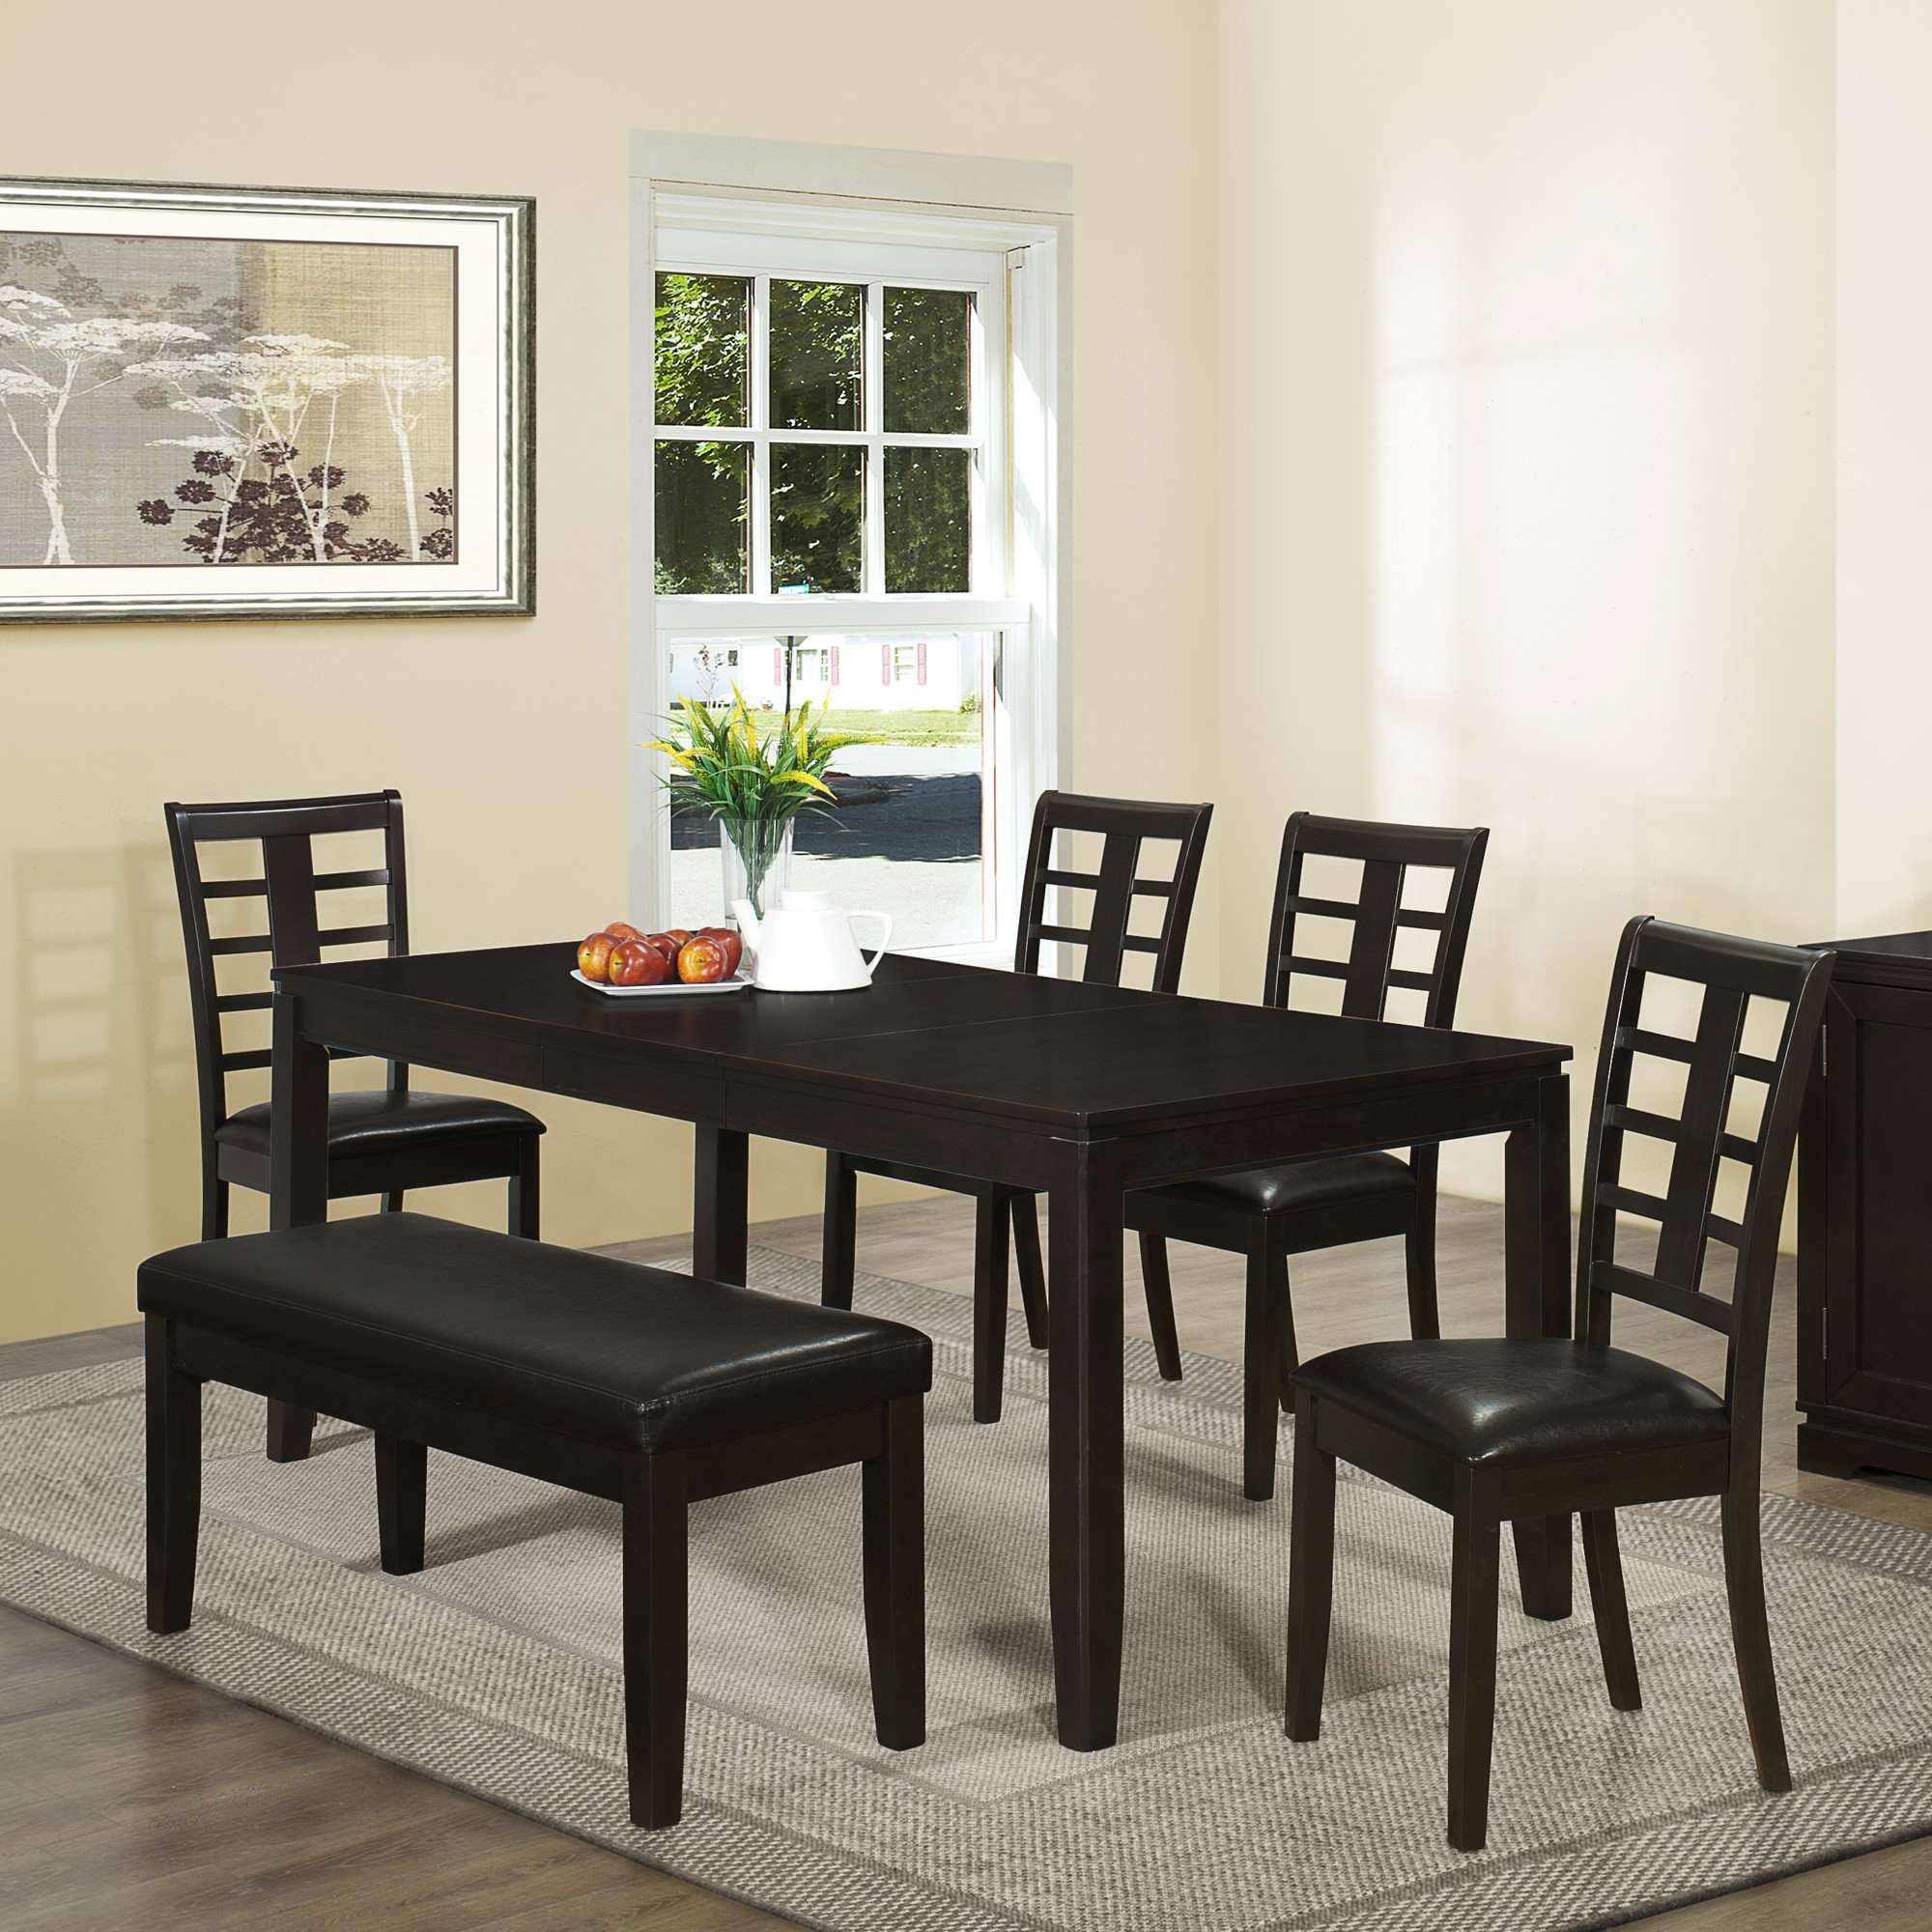 Small Two Person Dining Tables Pertaining To Fashionable Round Glass Top Dining Table With Metal Pedestal Having Set High (View 17 of 25)